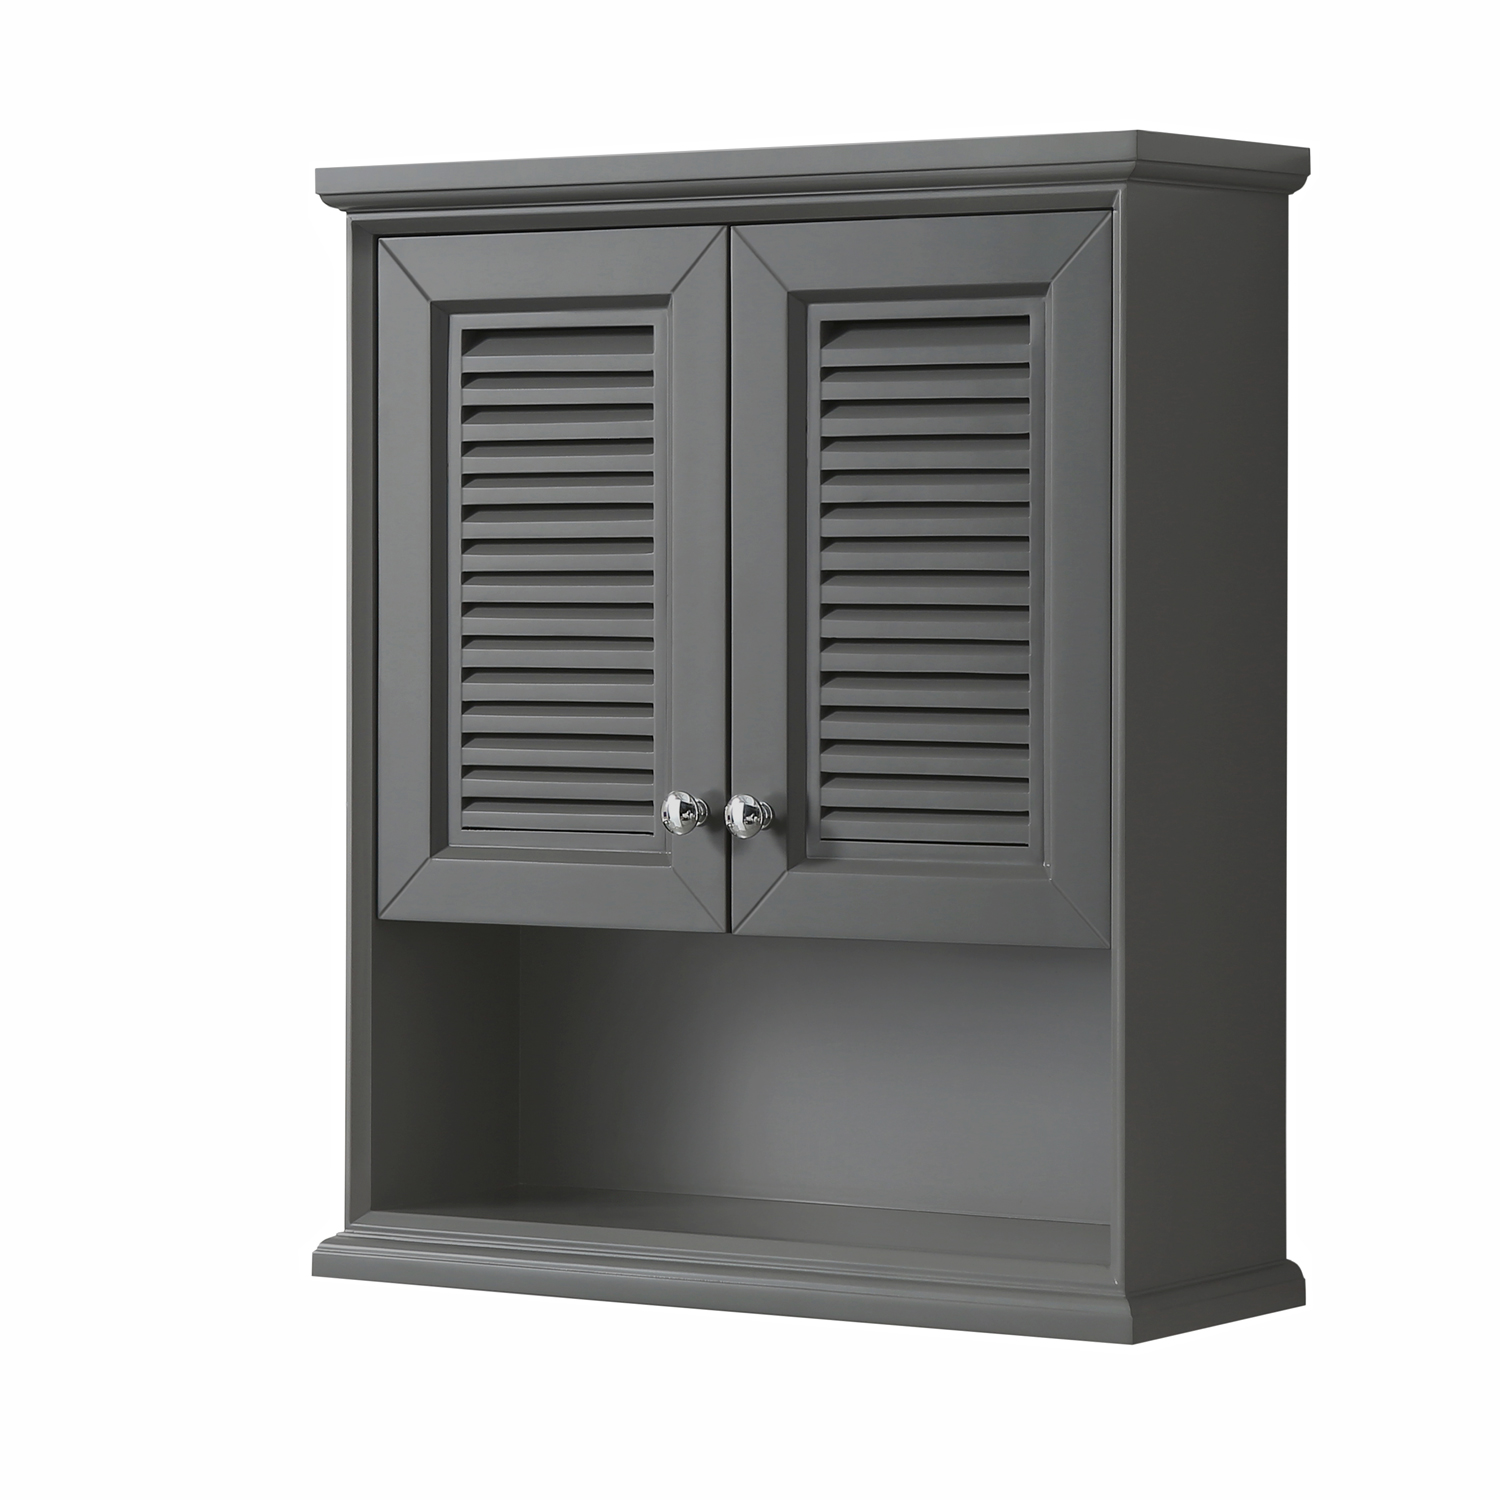 Tamara Over Toilet Wall Cabinet By Wyndham Collection